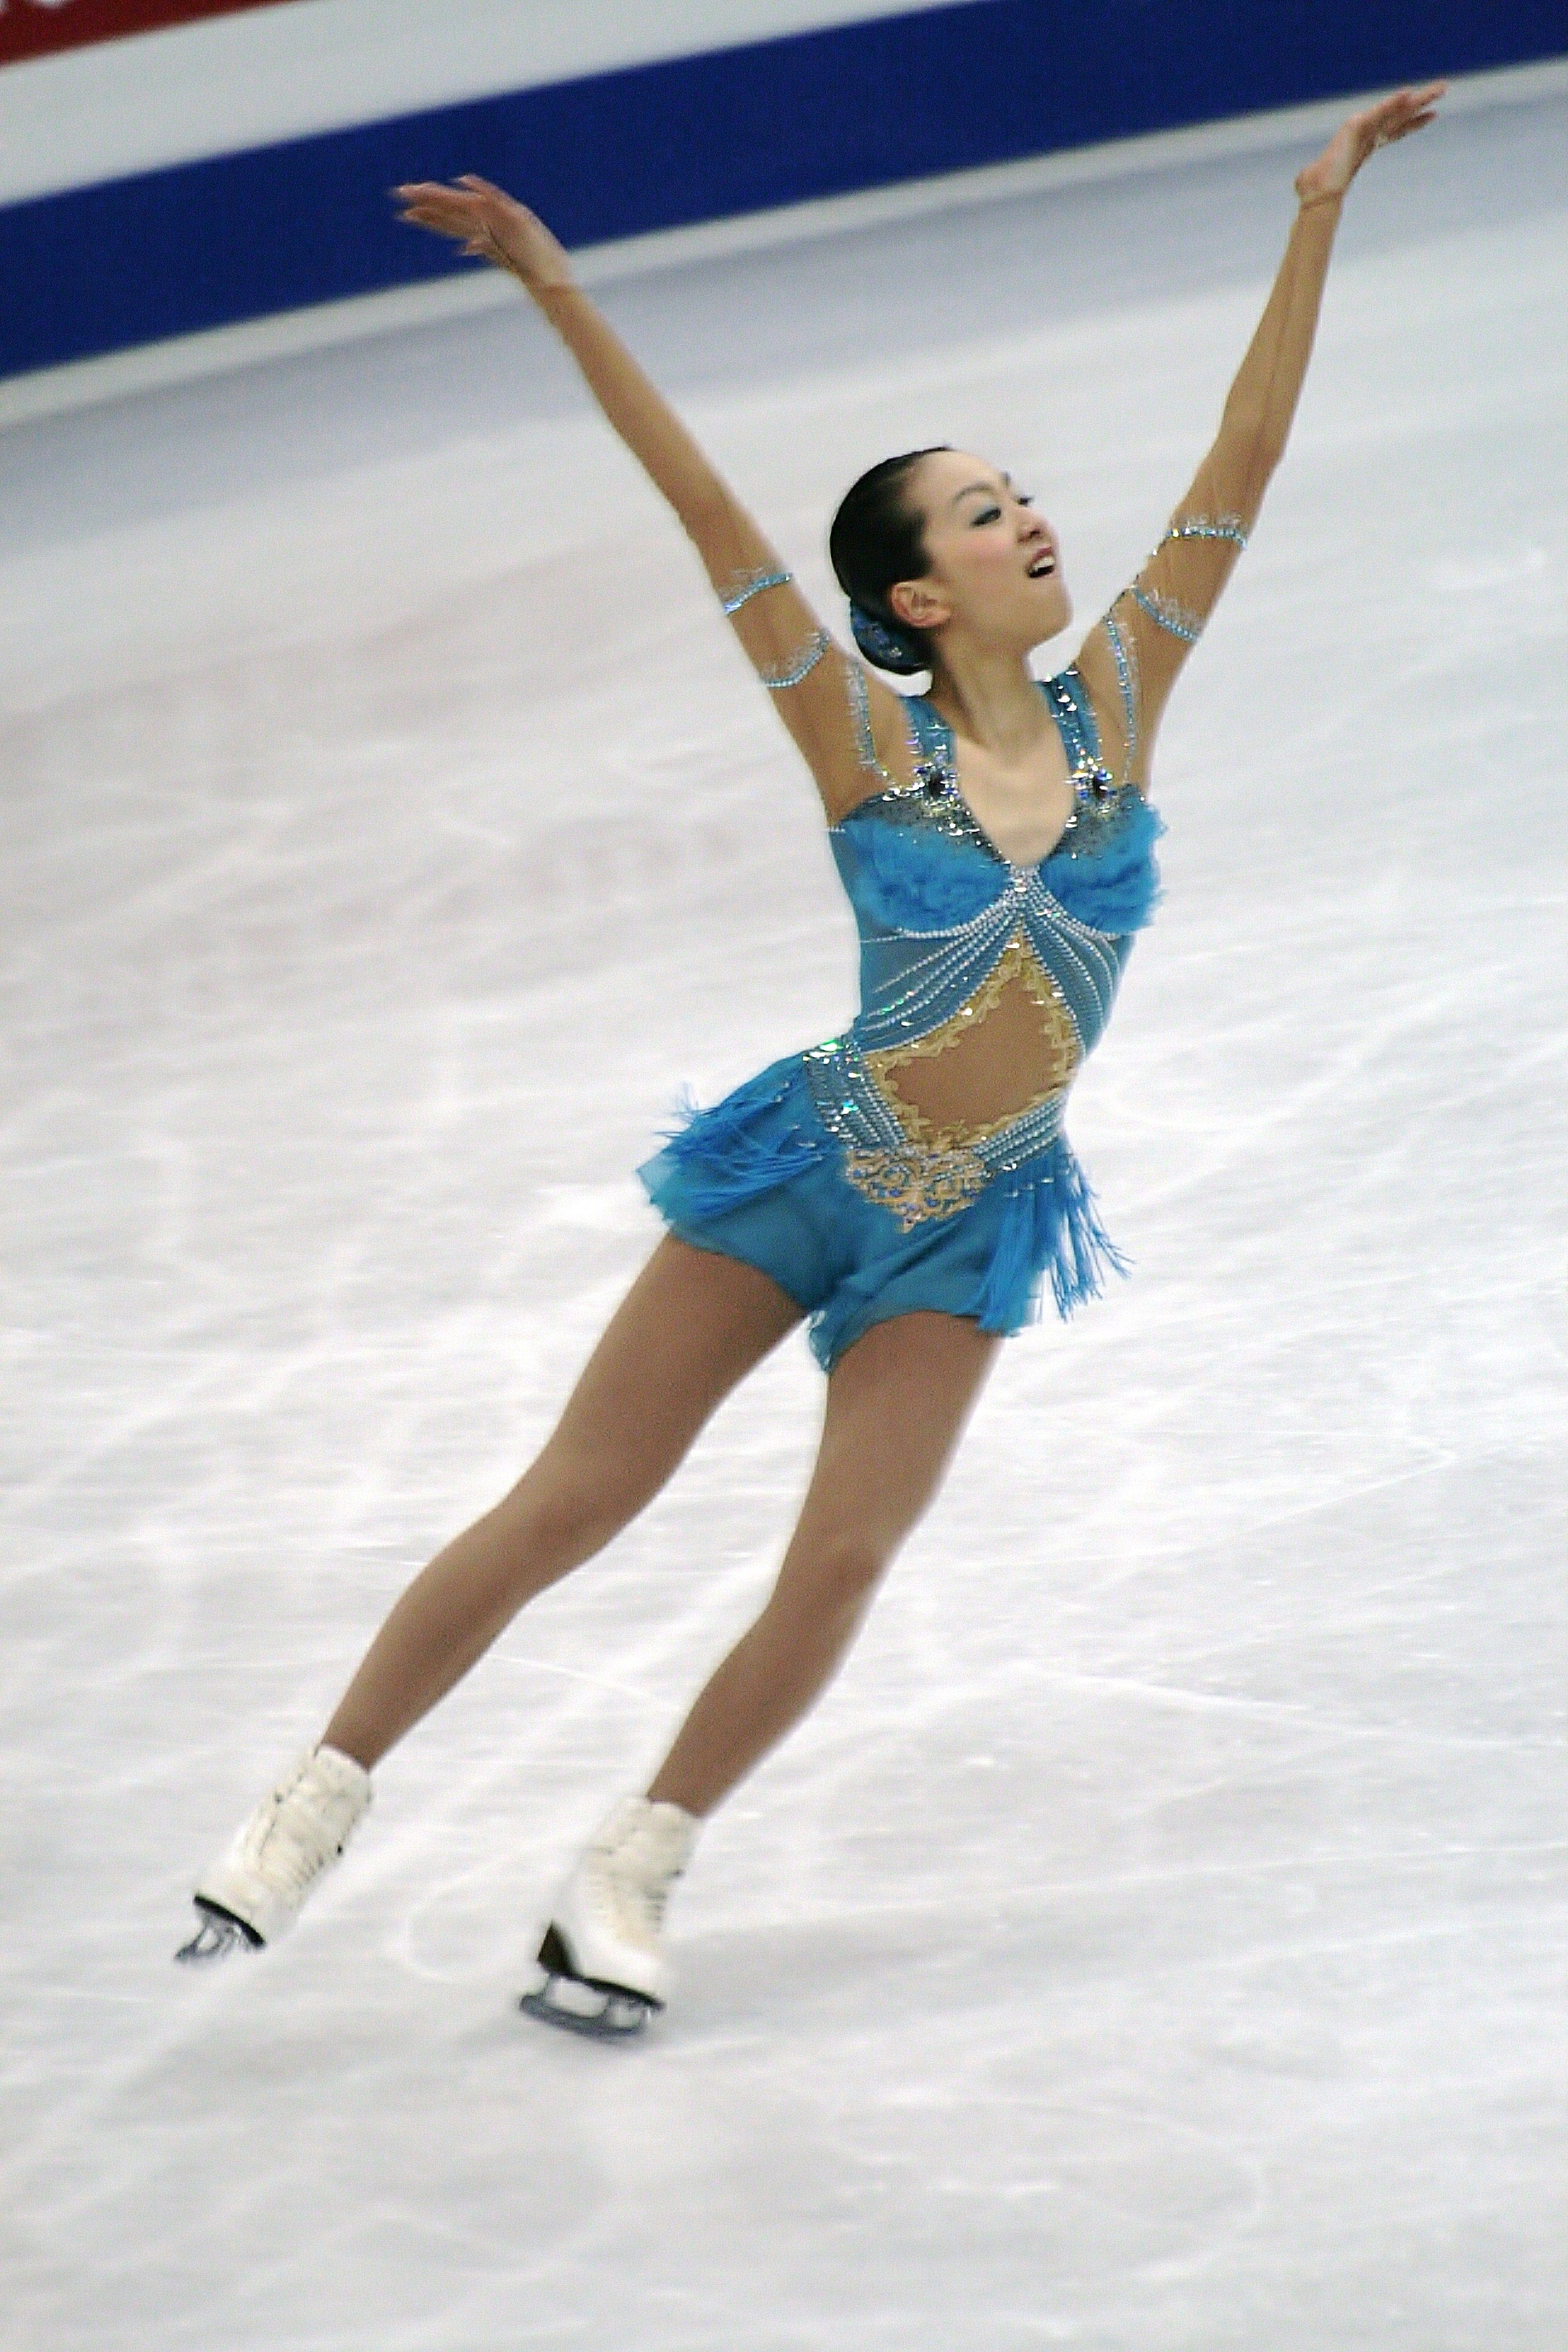 Discussion on this topic: Maryse Ouellet Canada, mao-asada/